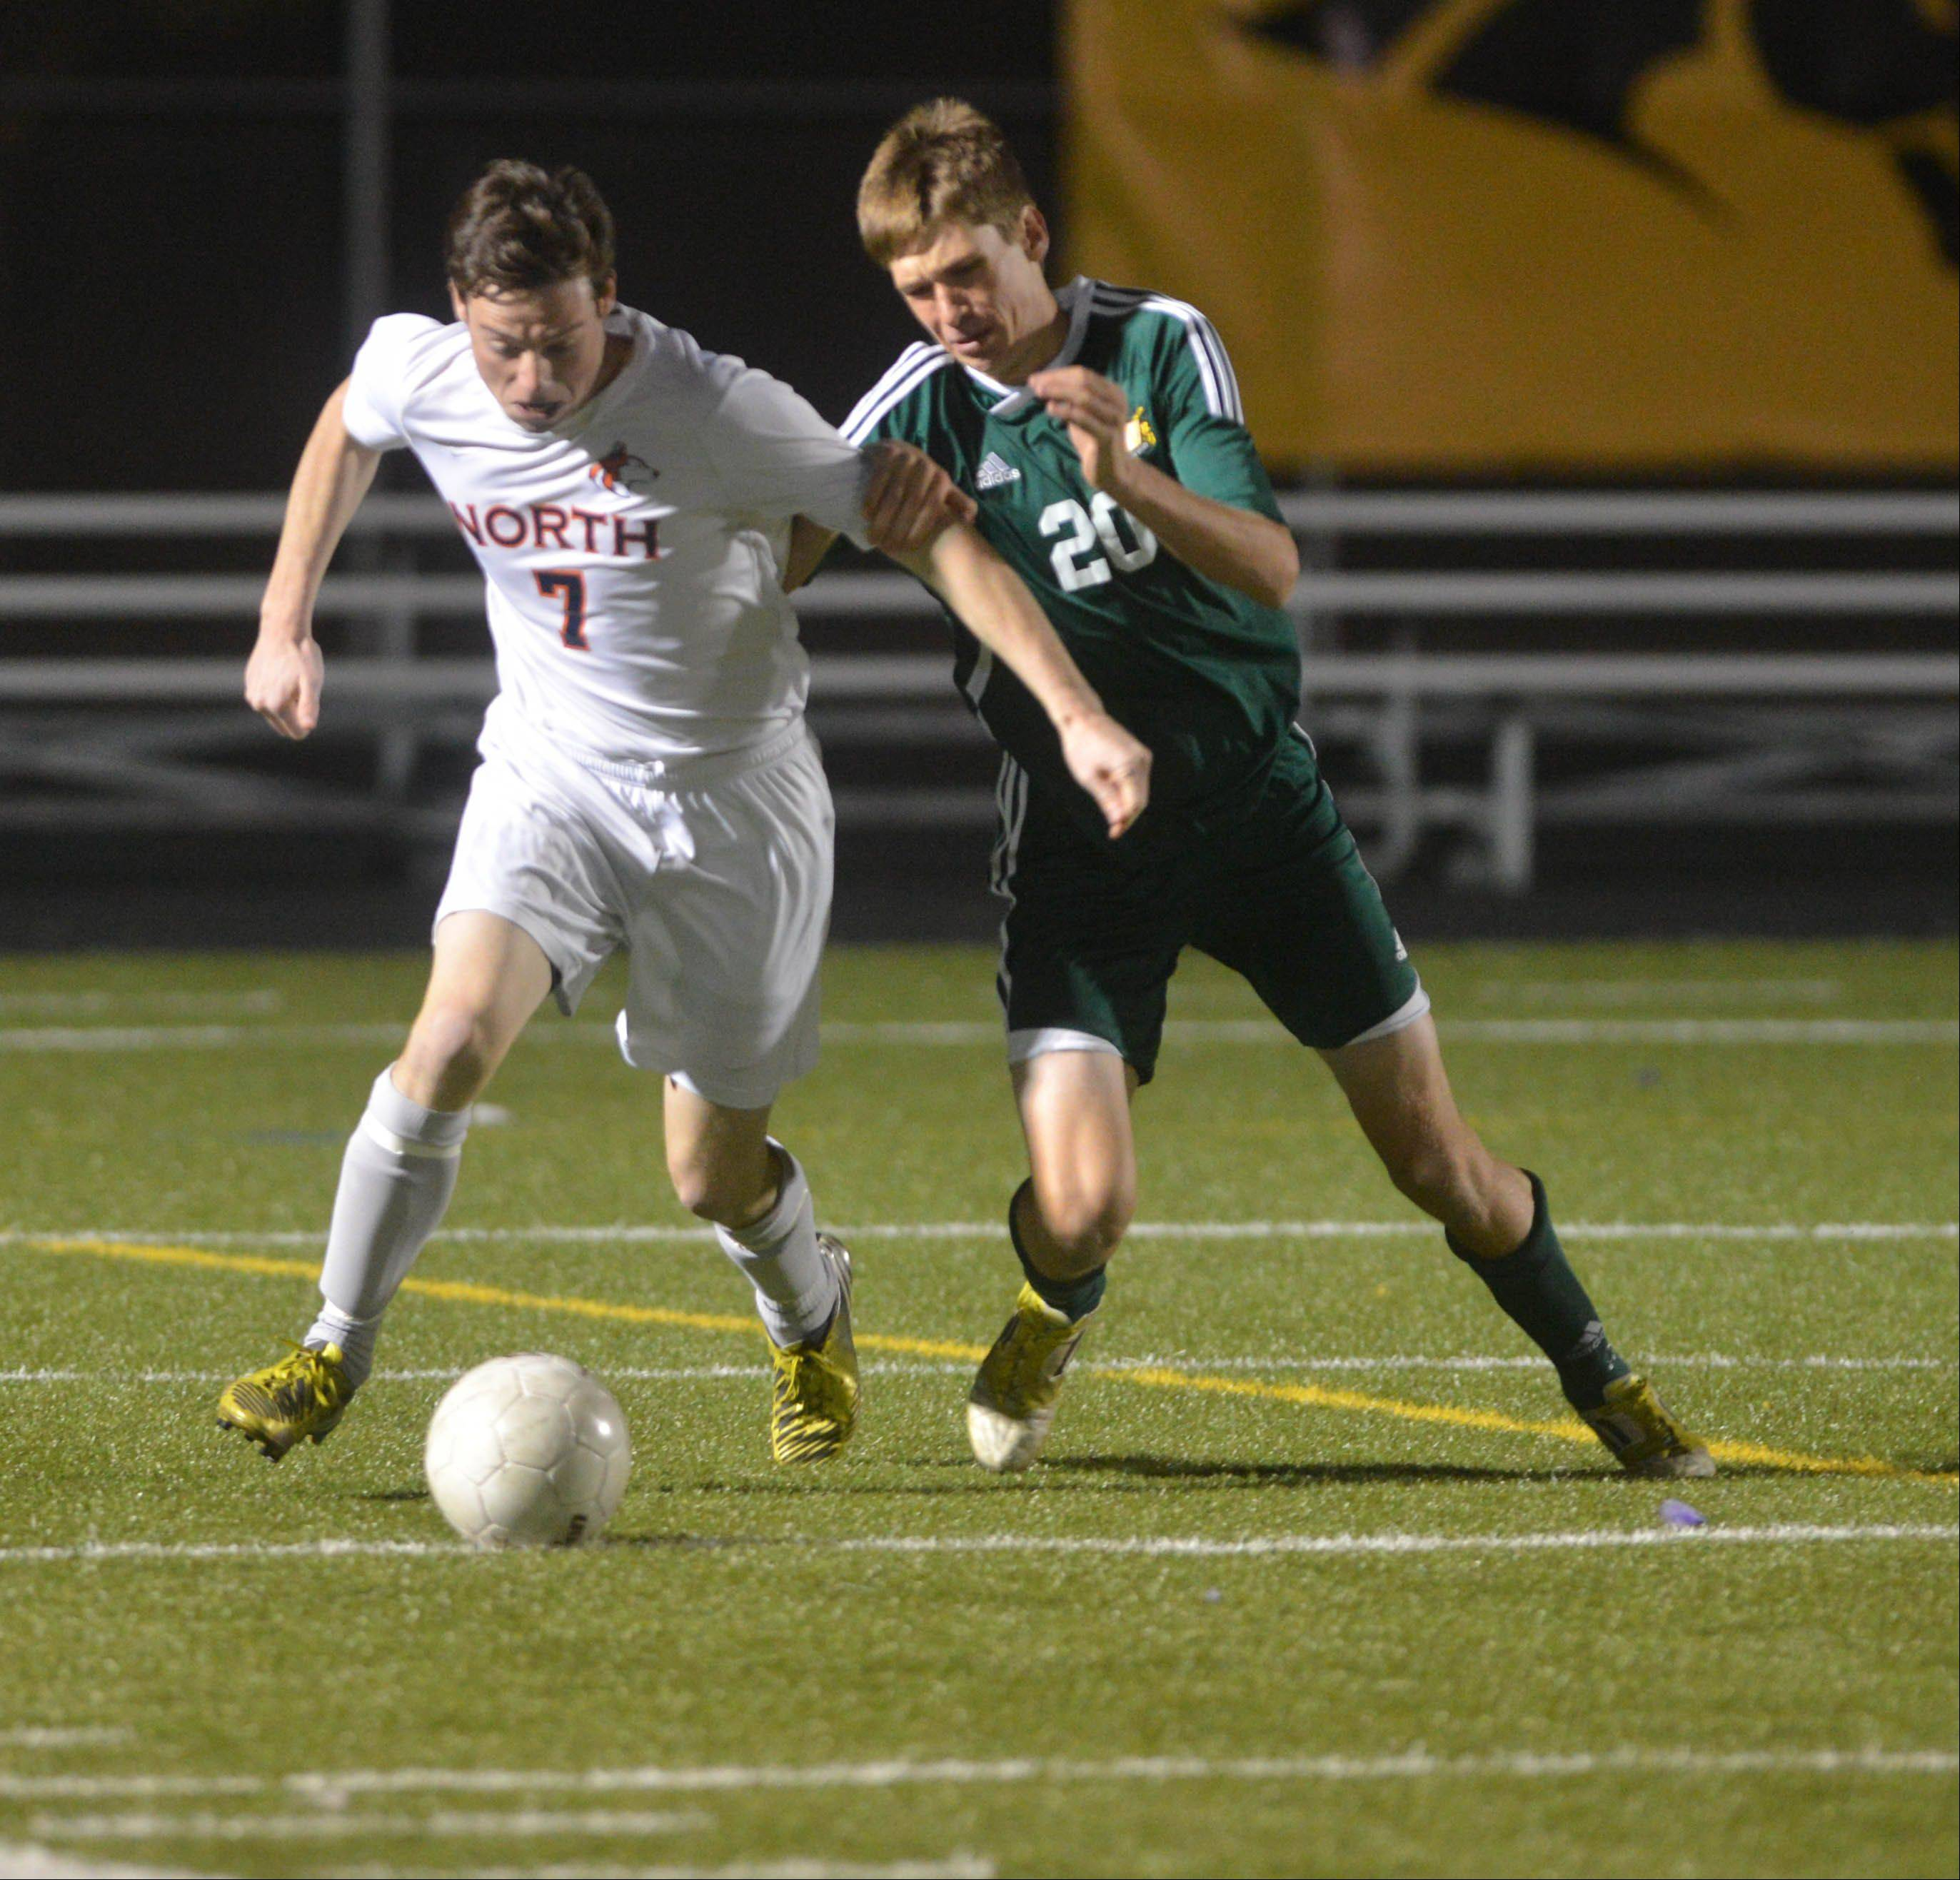 Alec Thompson of Naperville North and Drew Valek of Waubonsie vie for the ball during the Naperville North vs. Waubonsie Valley boys soccer Class 3A Metea Valley sectional semifinals Tuesday.